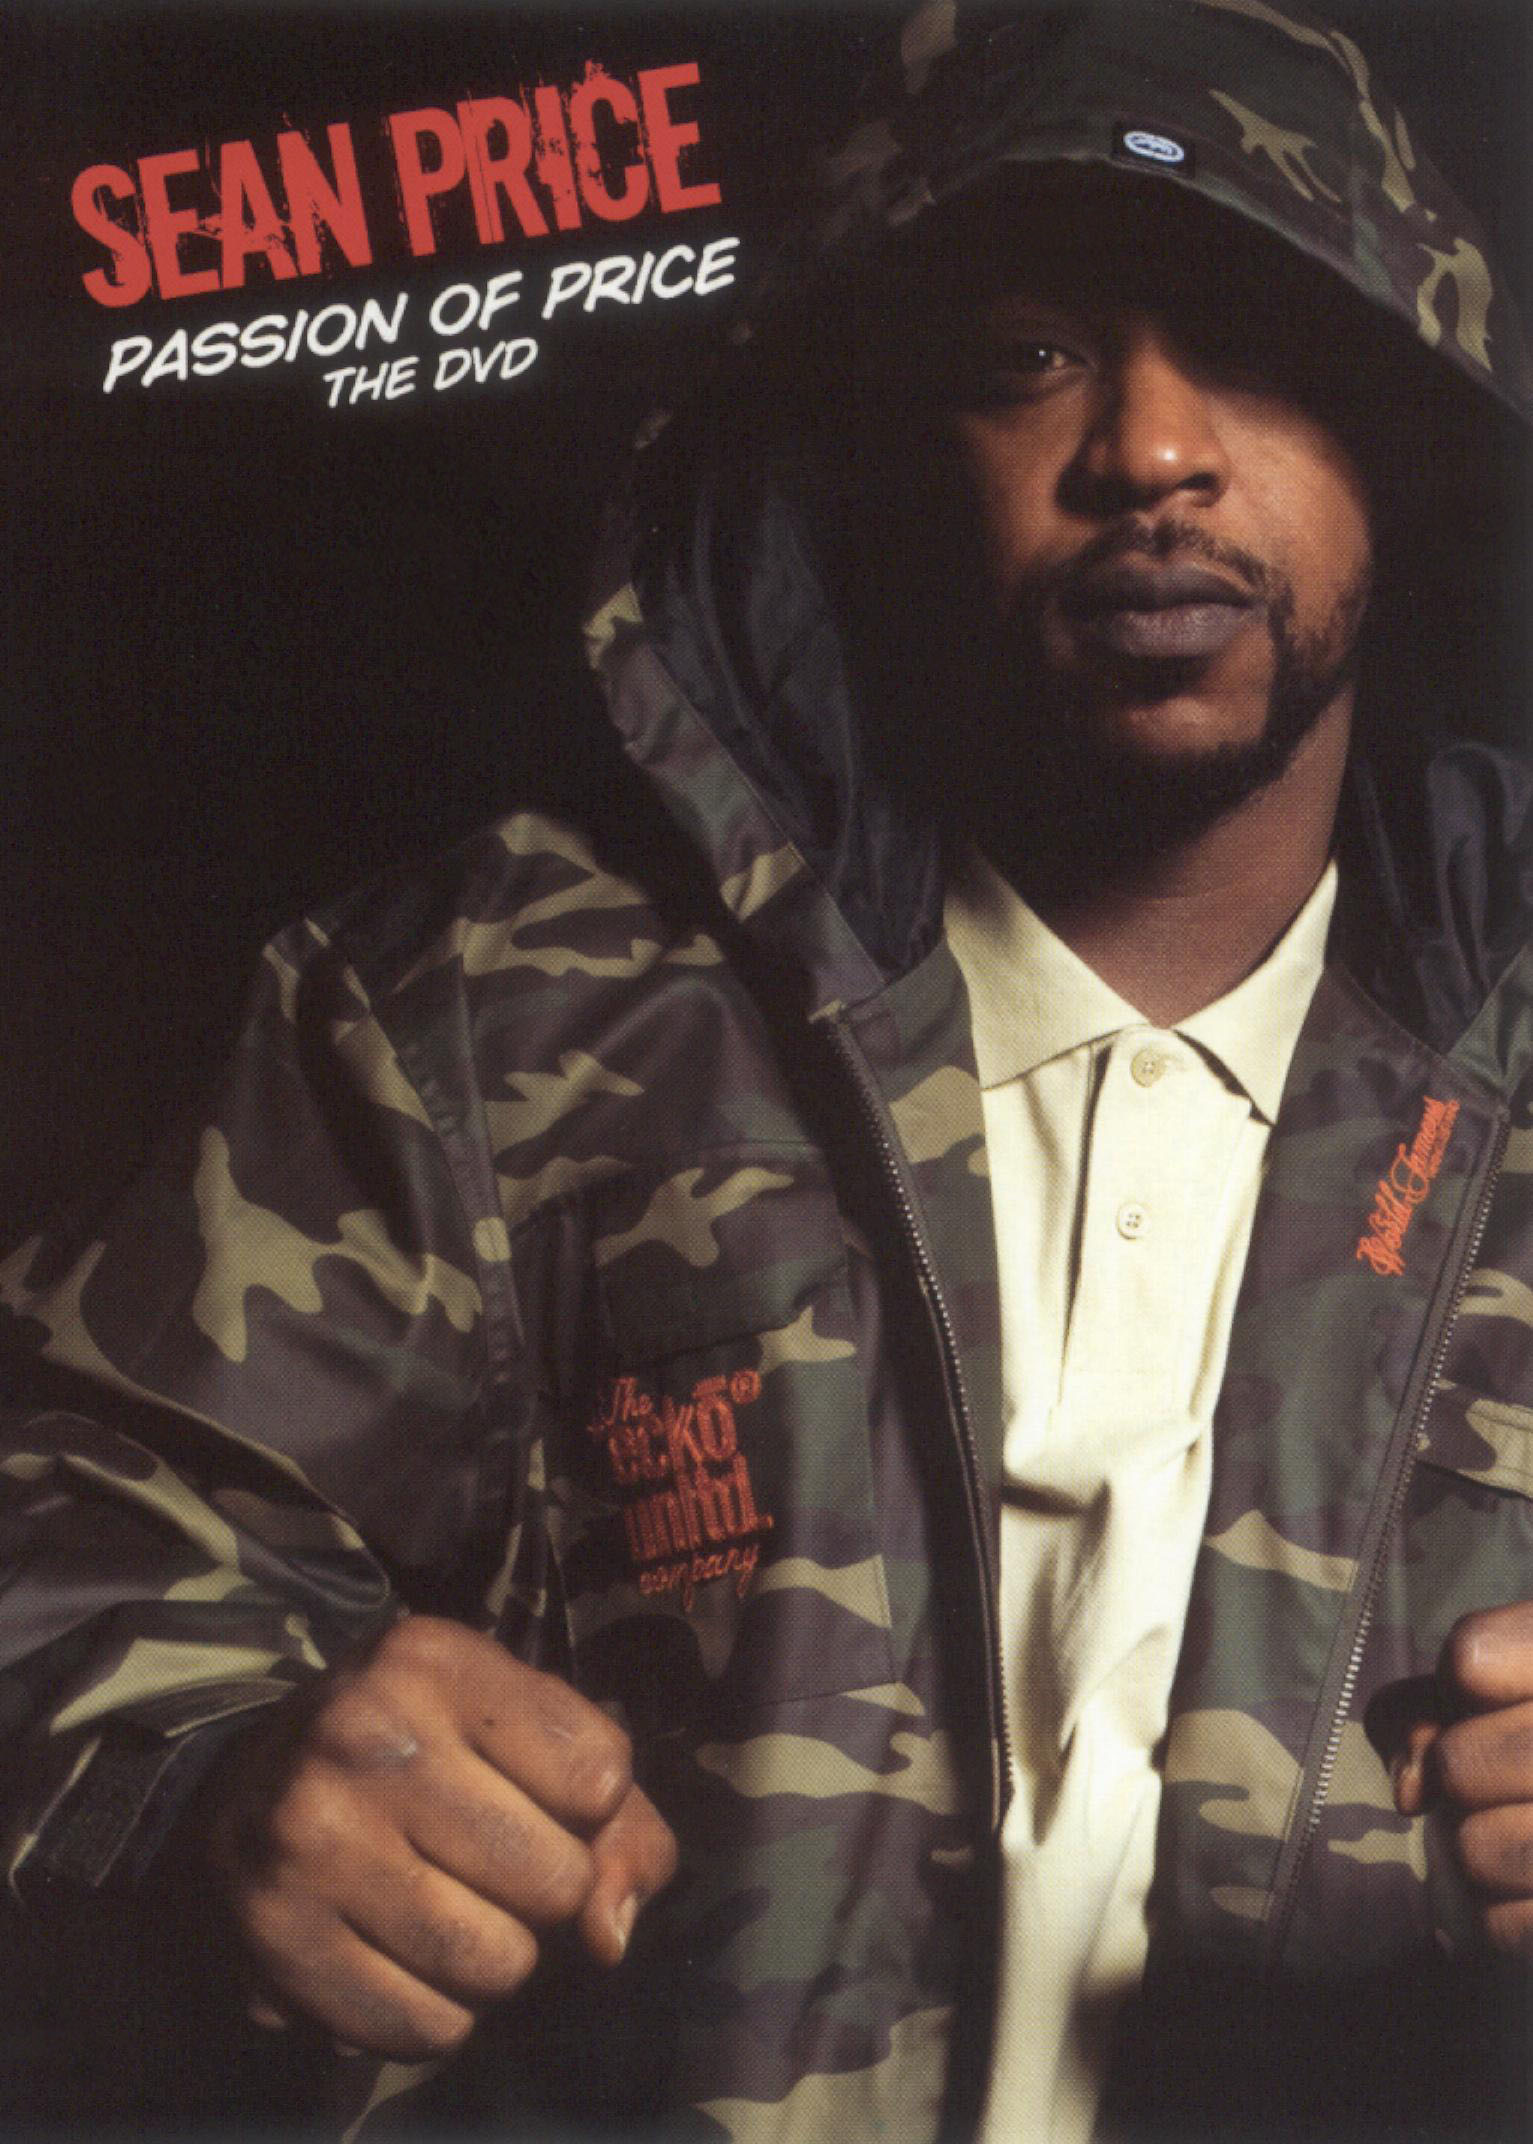 Sean Price: Passion of Price